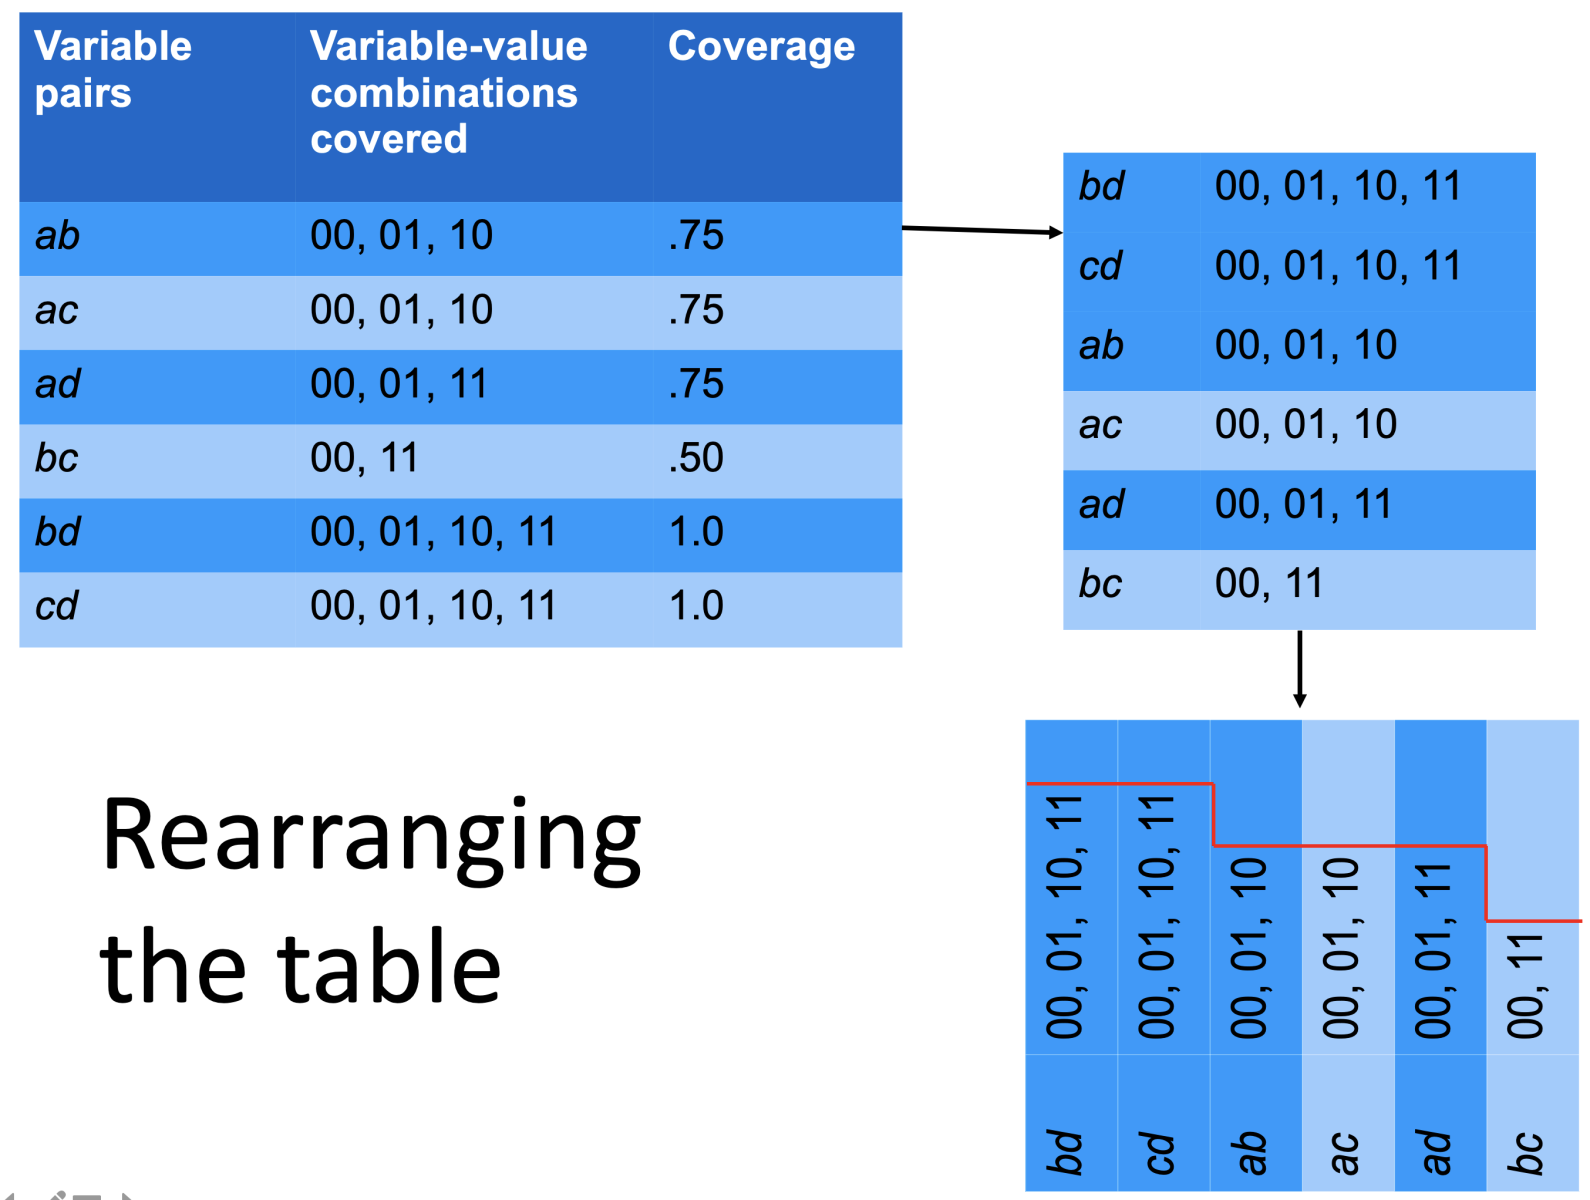 combinatorial coverage derivation